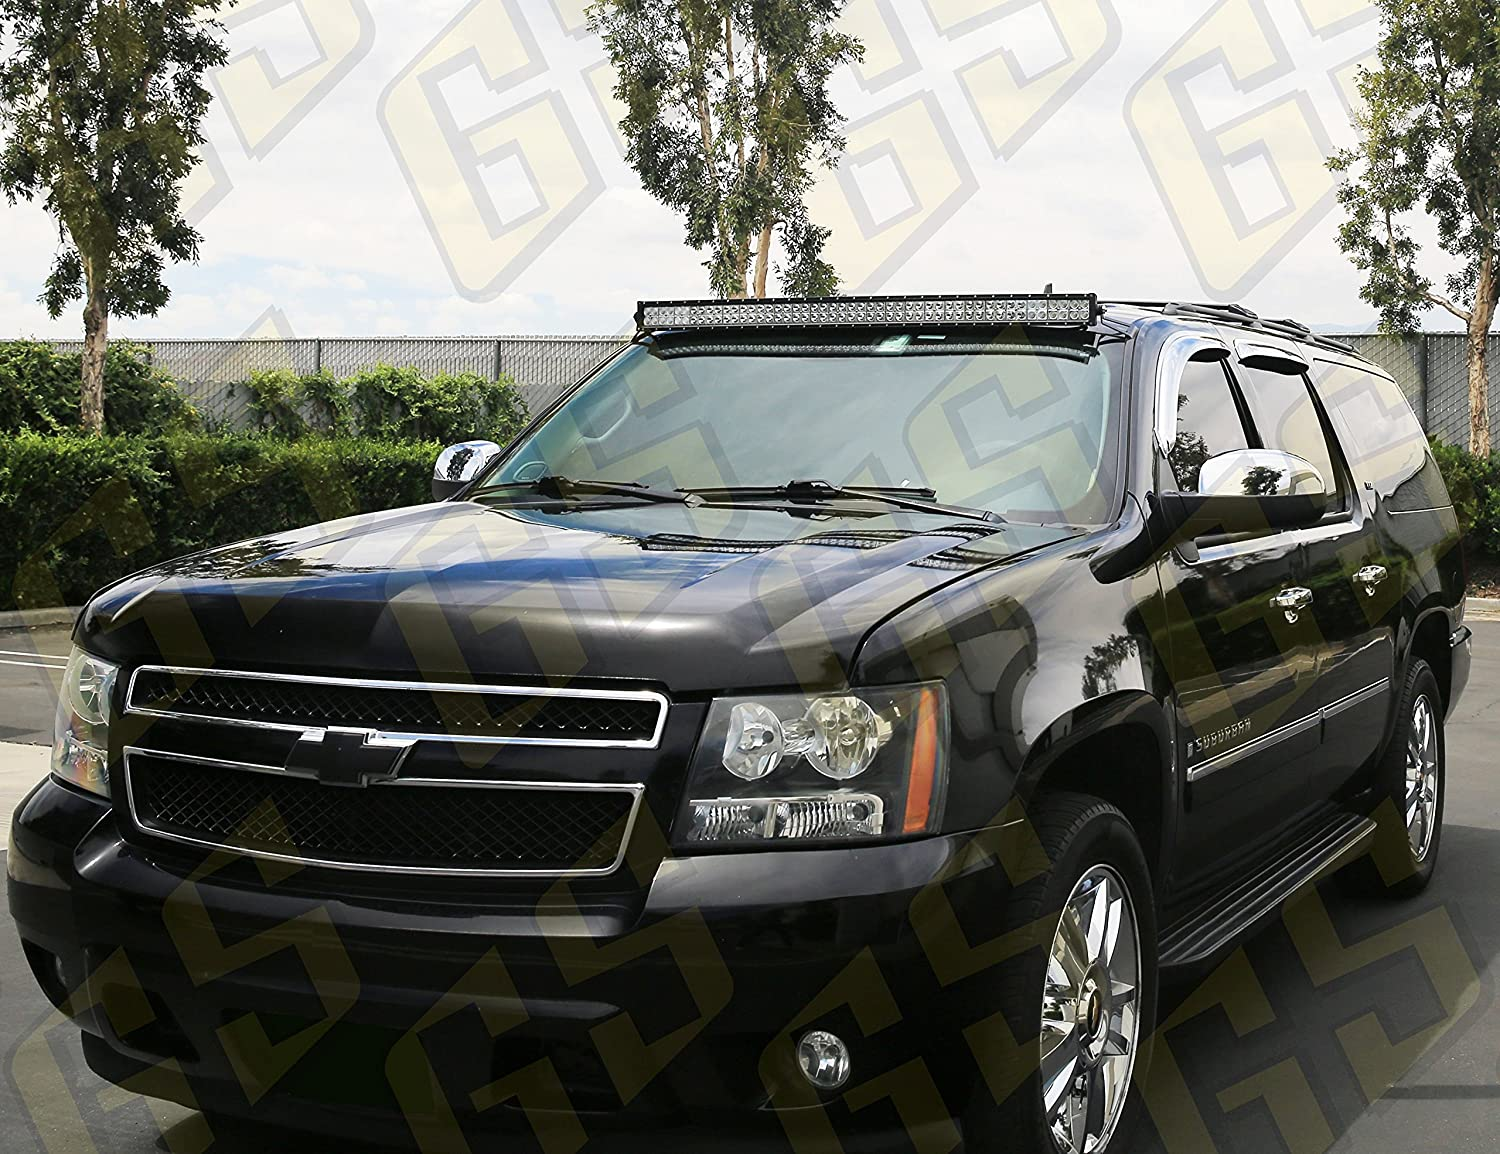 for 2007-2013 GM Pickup /& SUV Compatible with Chevrolet Chevy Avalanche Silverado Suburban Tahoe /& GMC Sierra Yukon GS Power Curved LED Light Bar Roof Mount Brackets choice of 50 | 52 | 54 inch